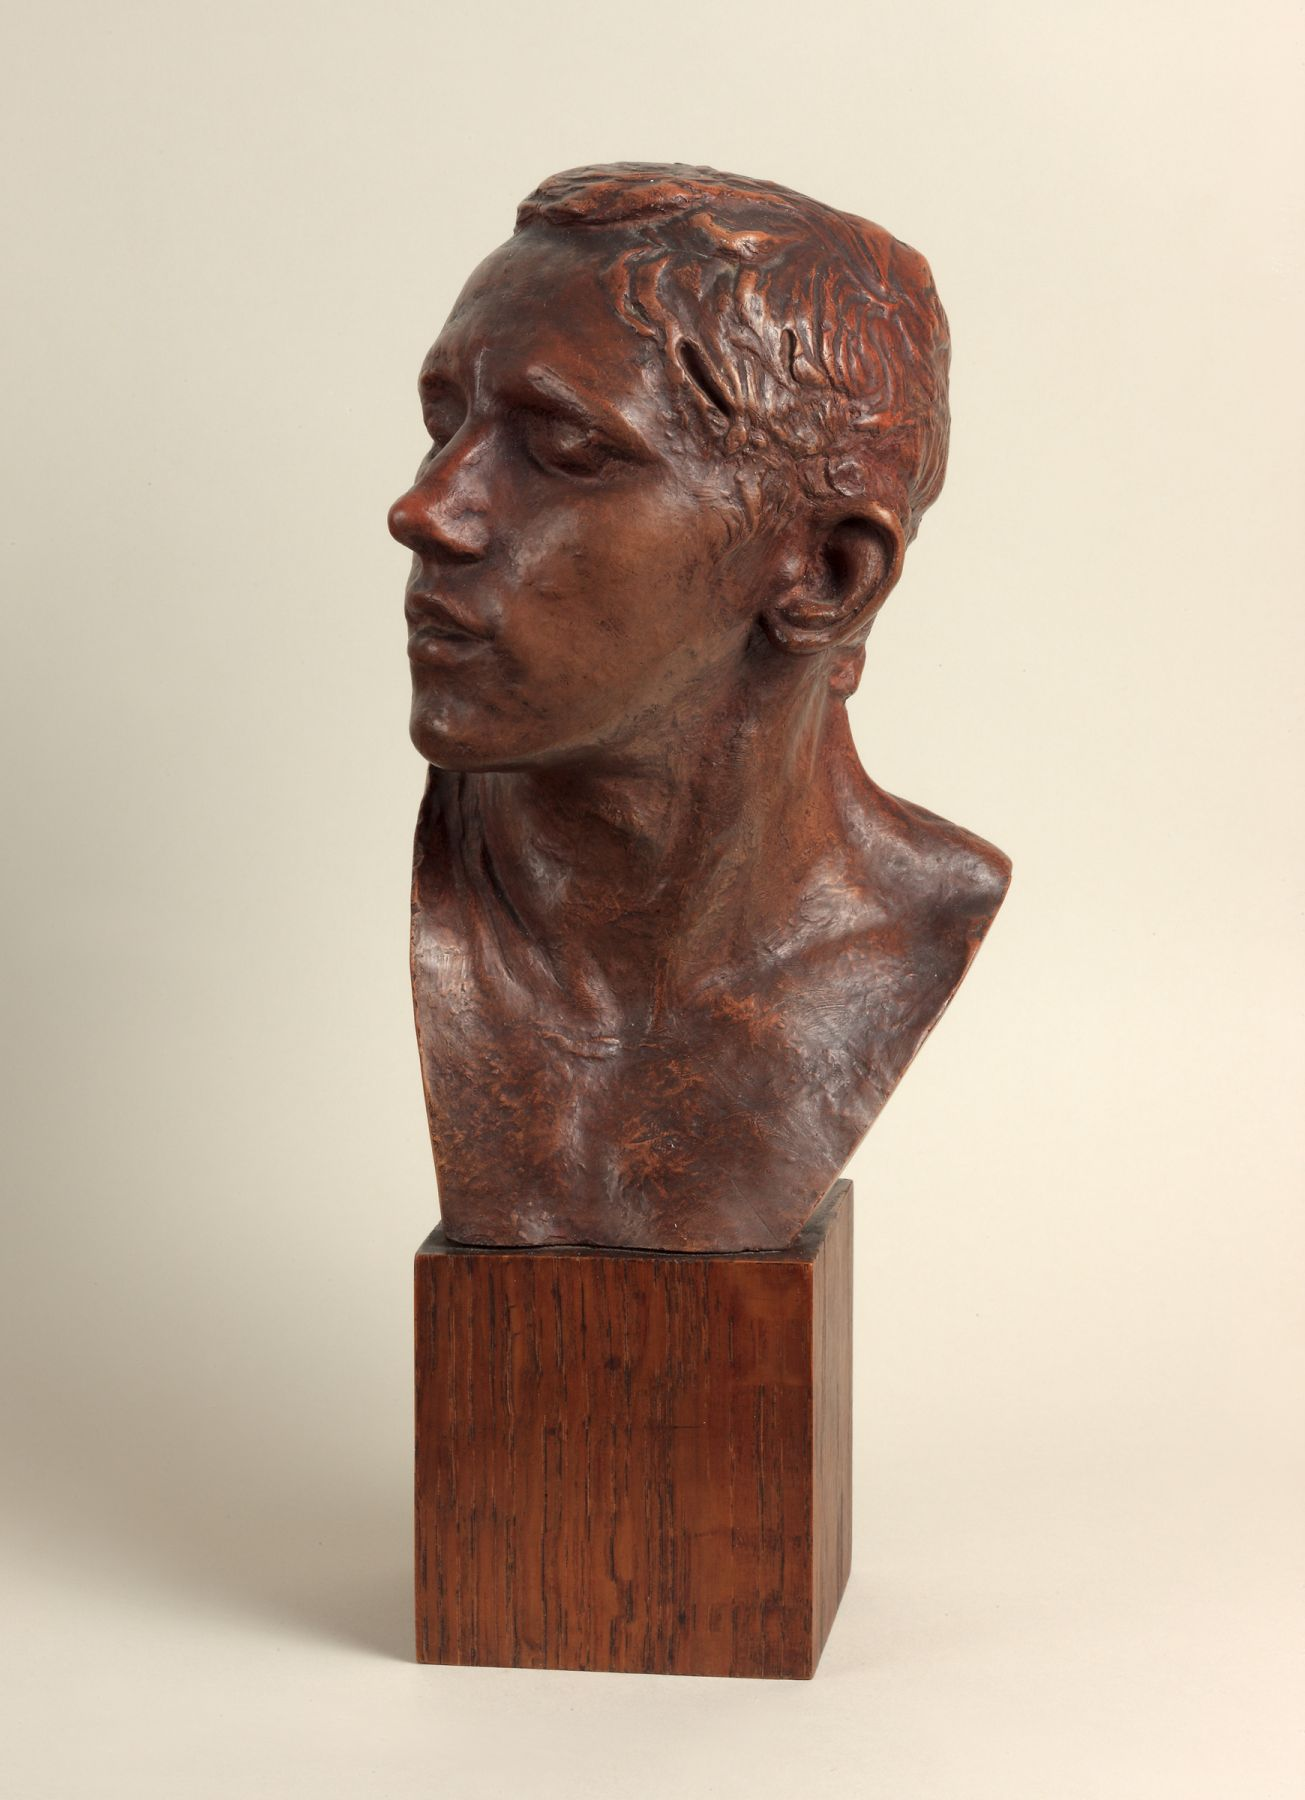 Auguste Rodin, Bust of the Age of Bronze (Buste de l'age d'Airain, moyen modèle), 1917  Patinated terracotta  H: 8 1/2 in  Signed on back of the neck